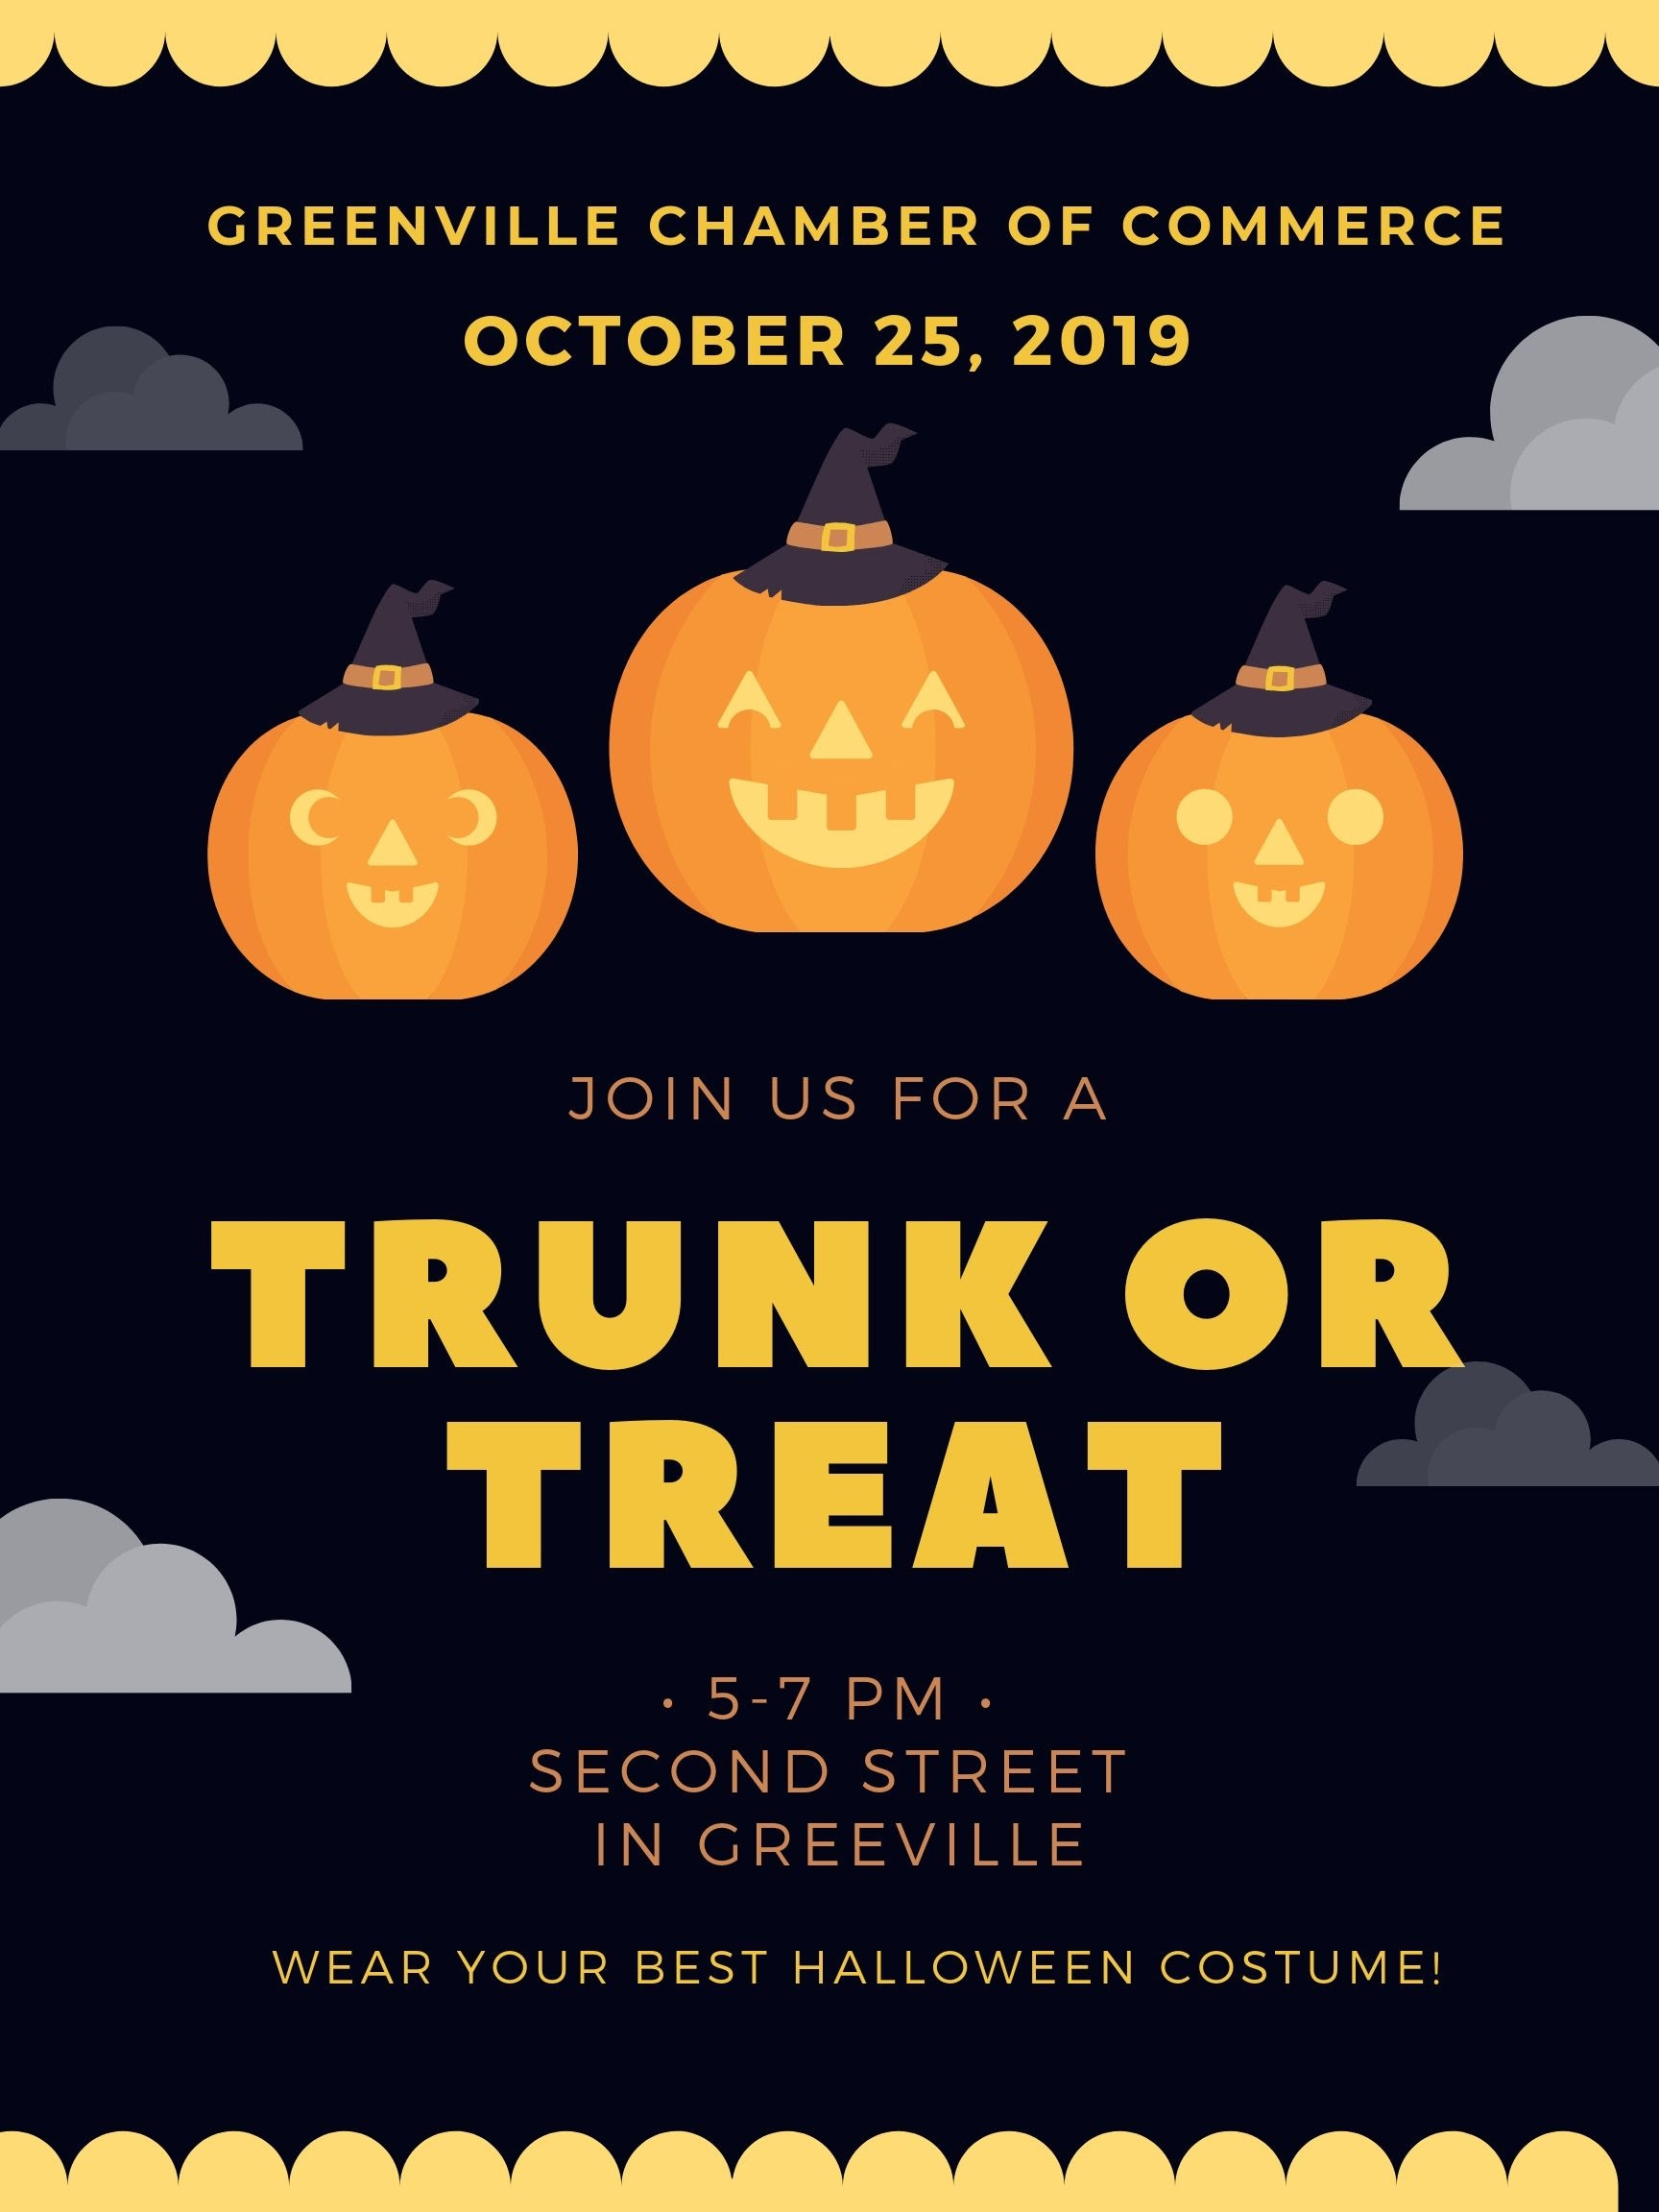 Greenville Trunk Or Treat 2019